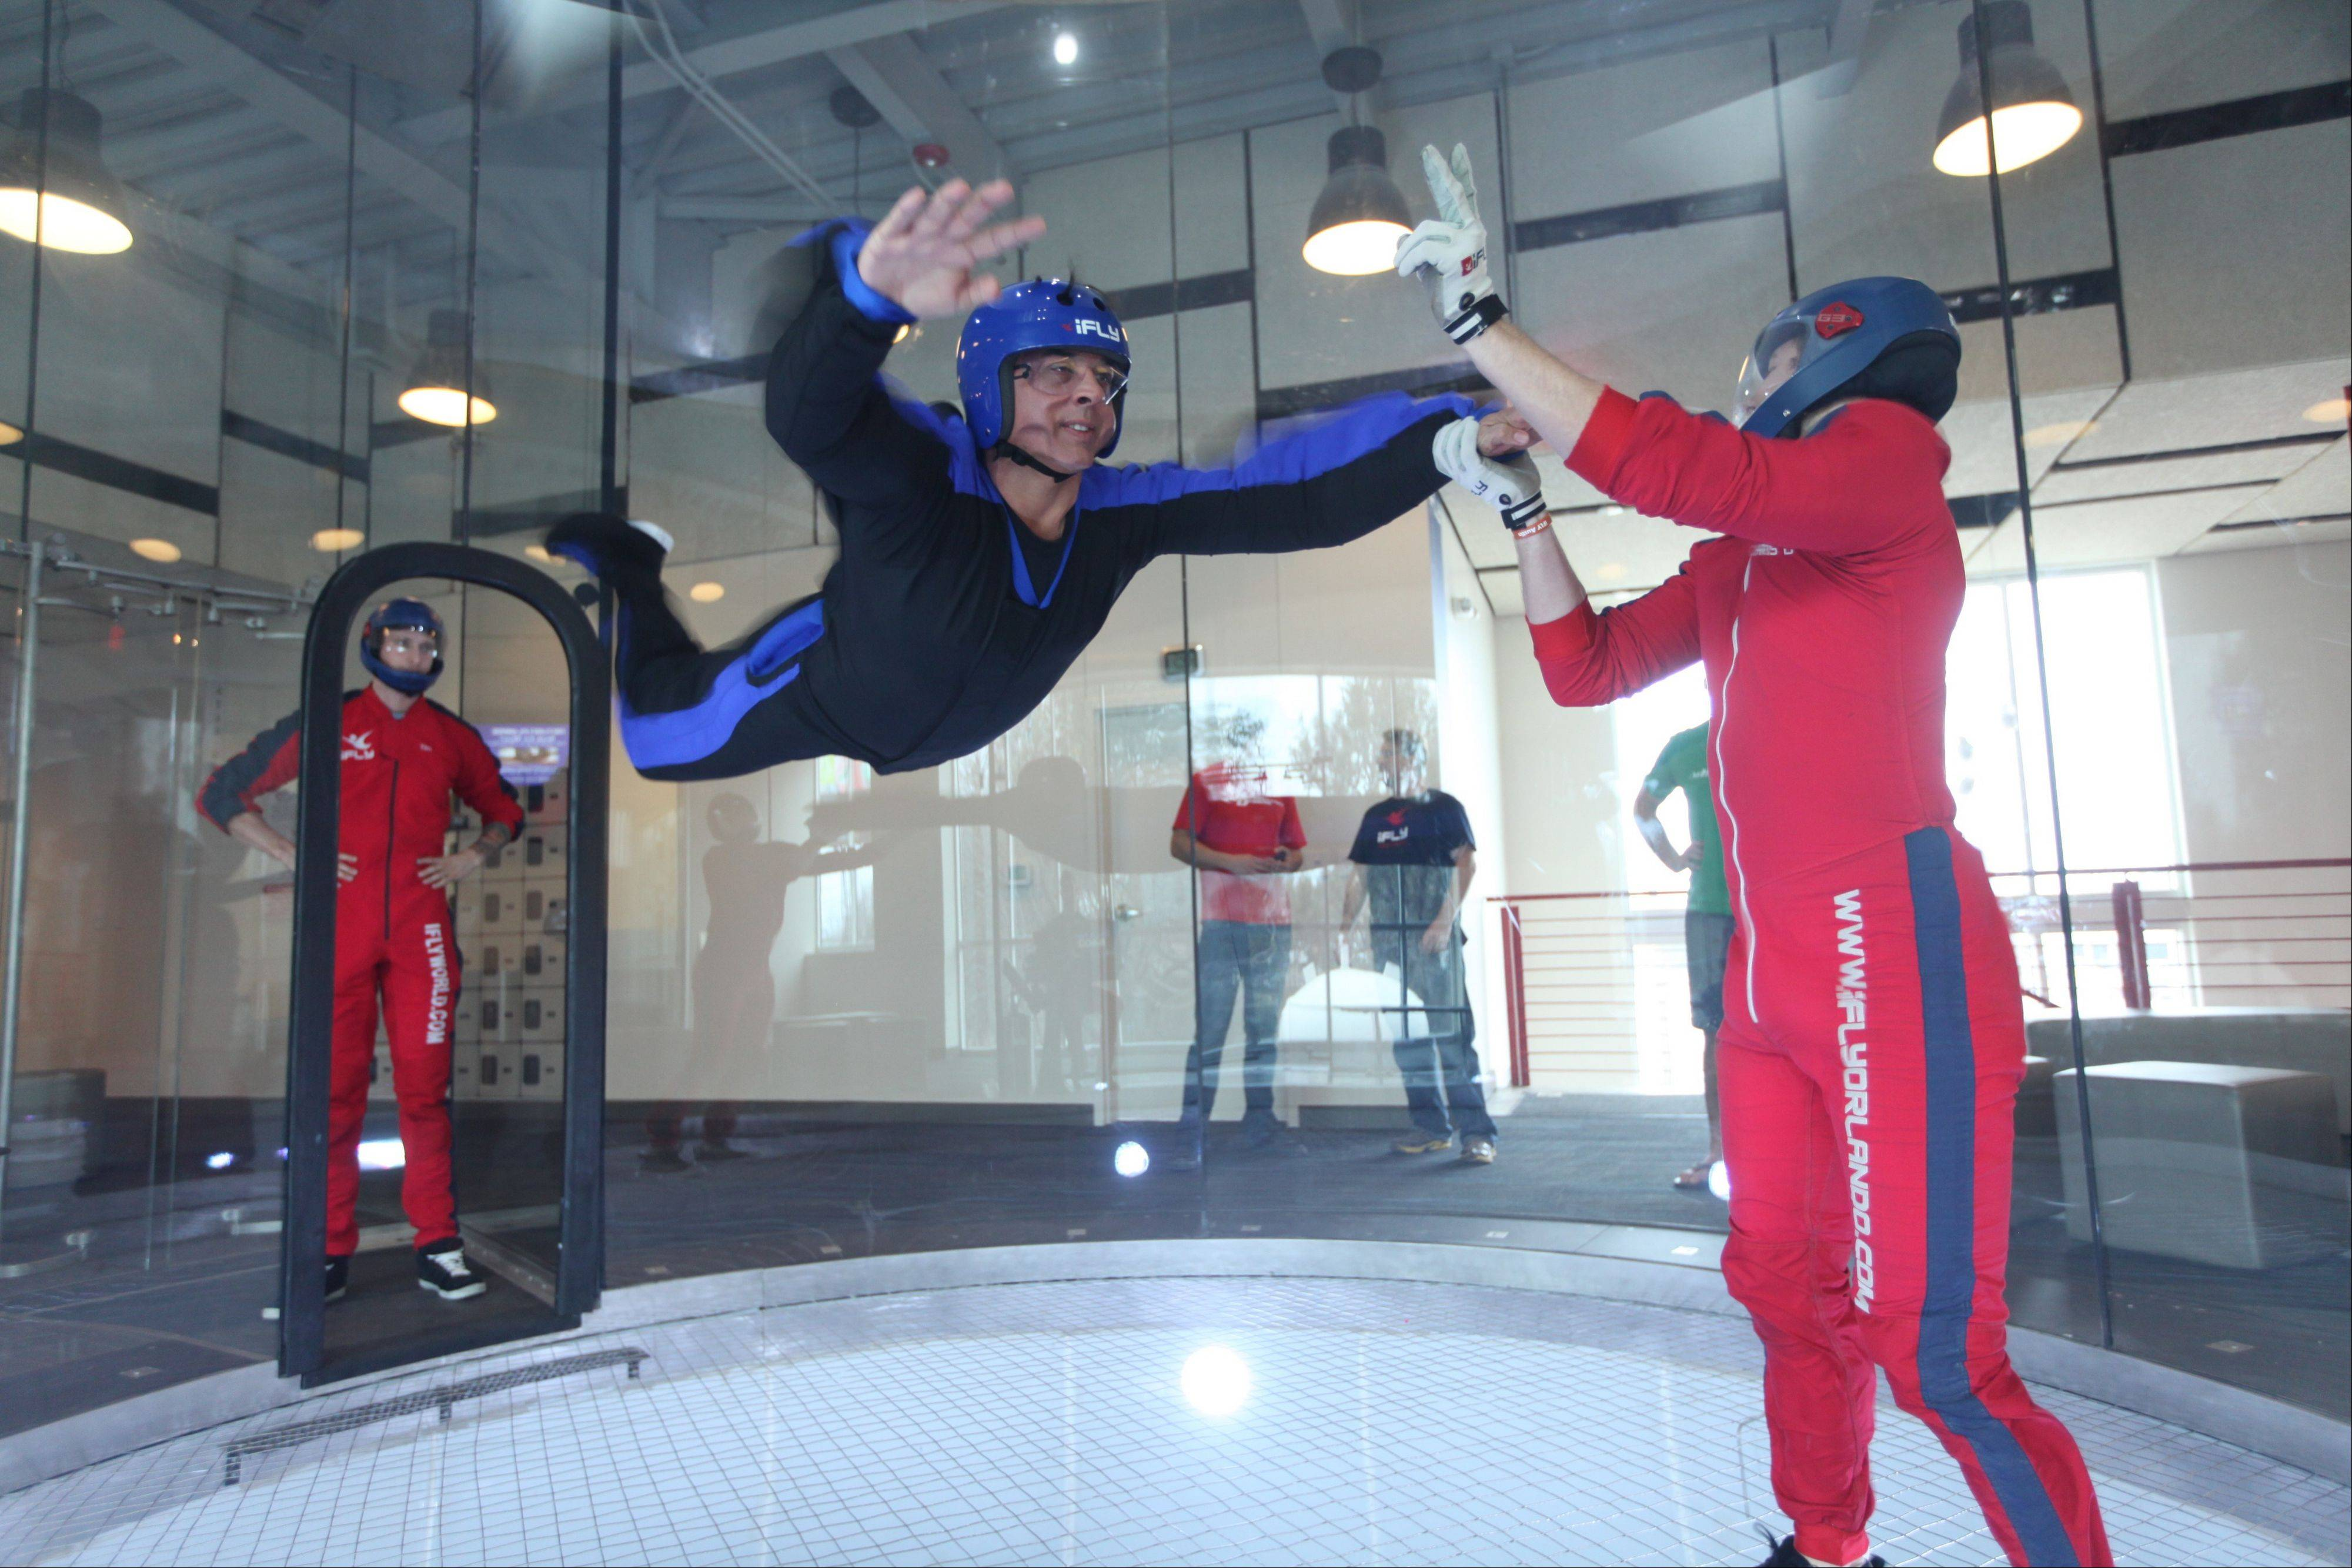 The Chicago area�s second iFly indoor sky-diving facility will be coming to Naperville next spring after the city council unanimously approved the Texas-based company�s plans this week. A fan system blowing through a 50-foot tall flight chamber creates the conditions for indoor sky diving, in which participants can �fly like a superhero� without jumping out of a plane.